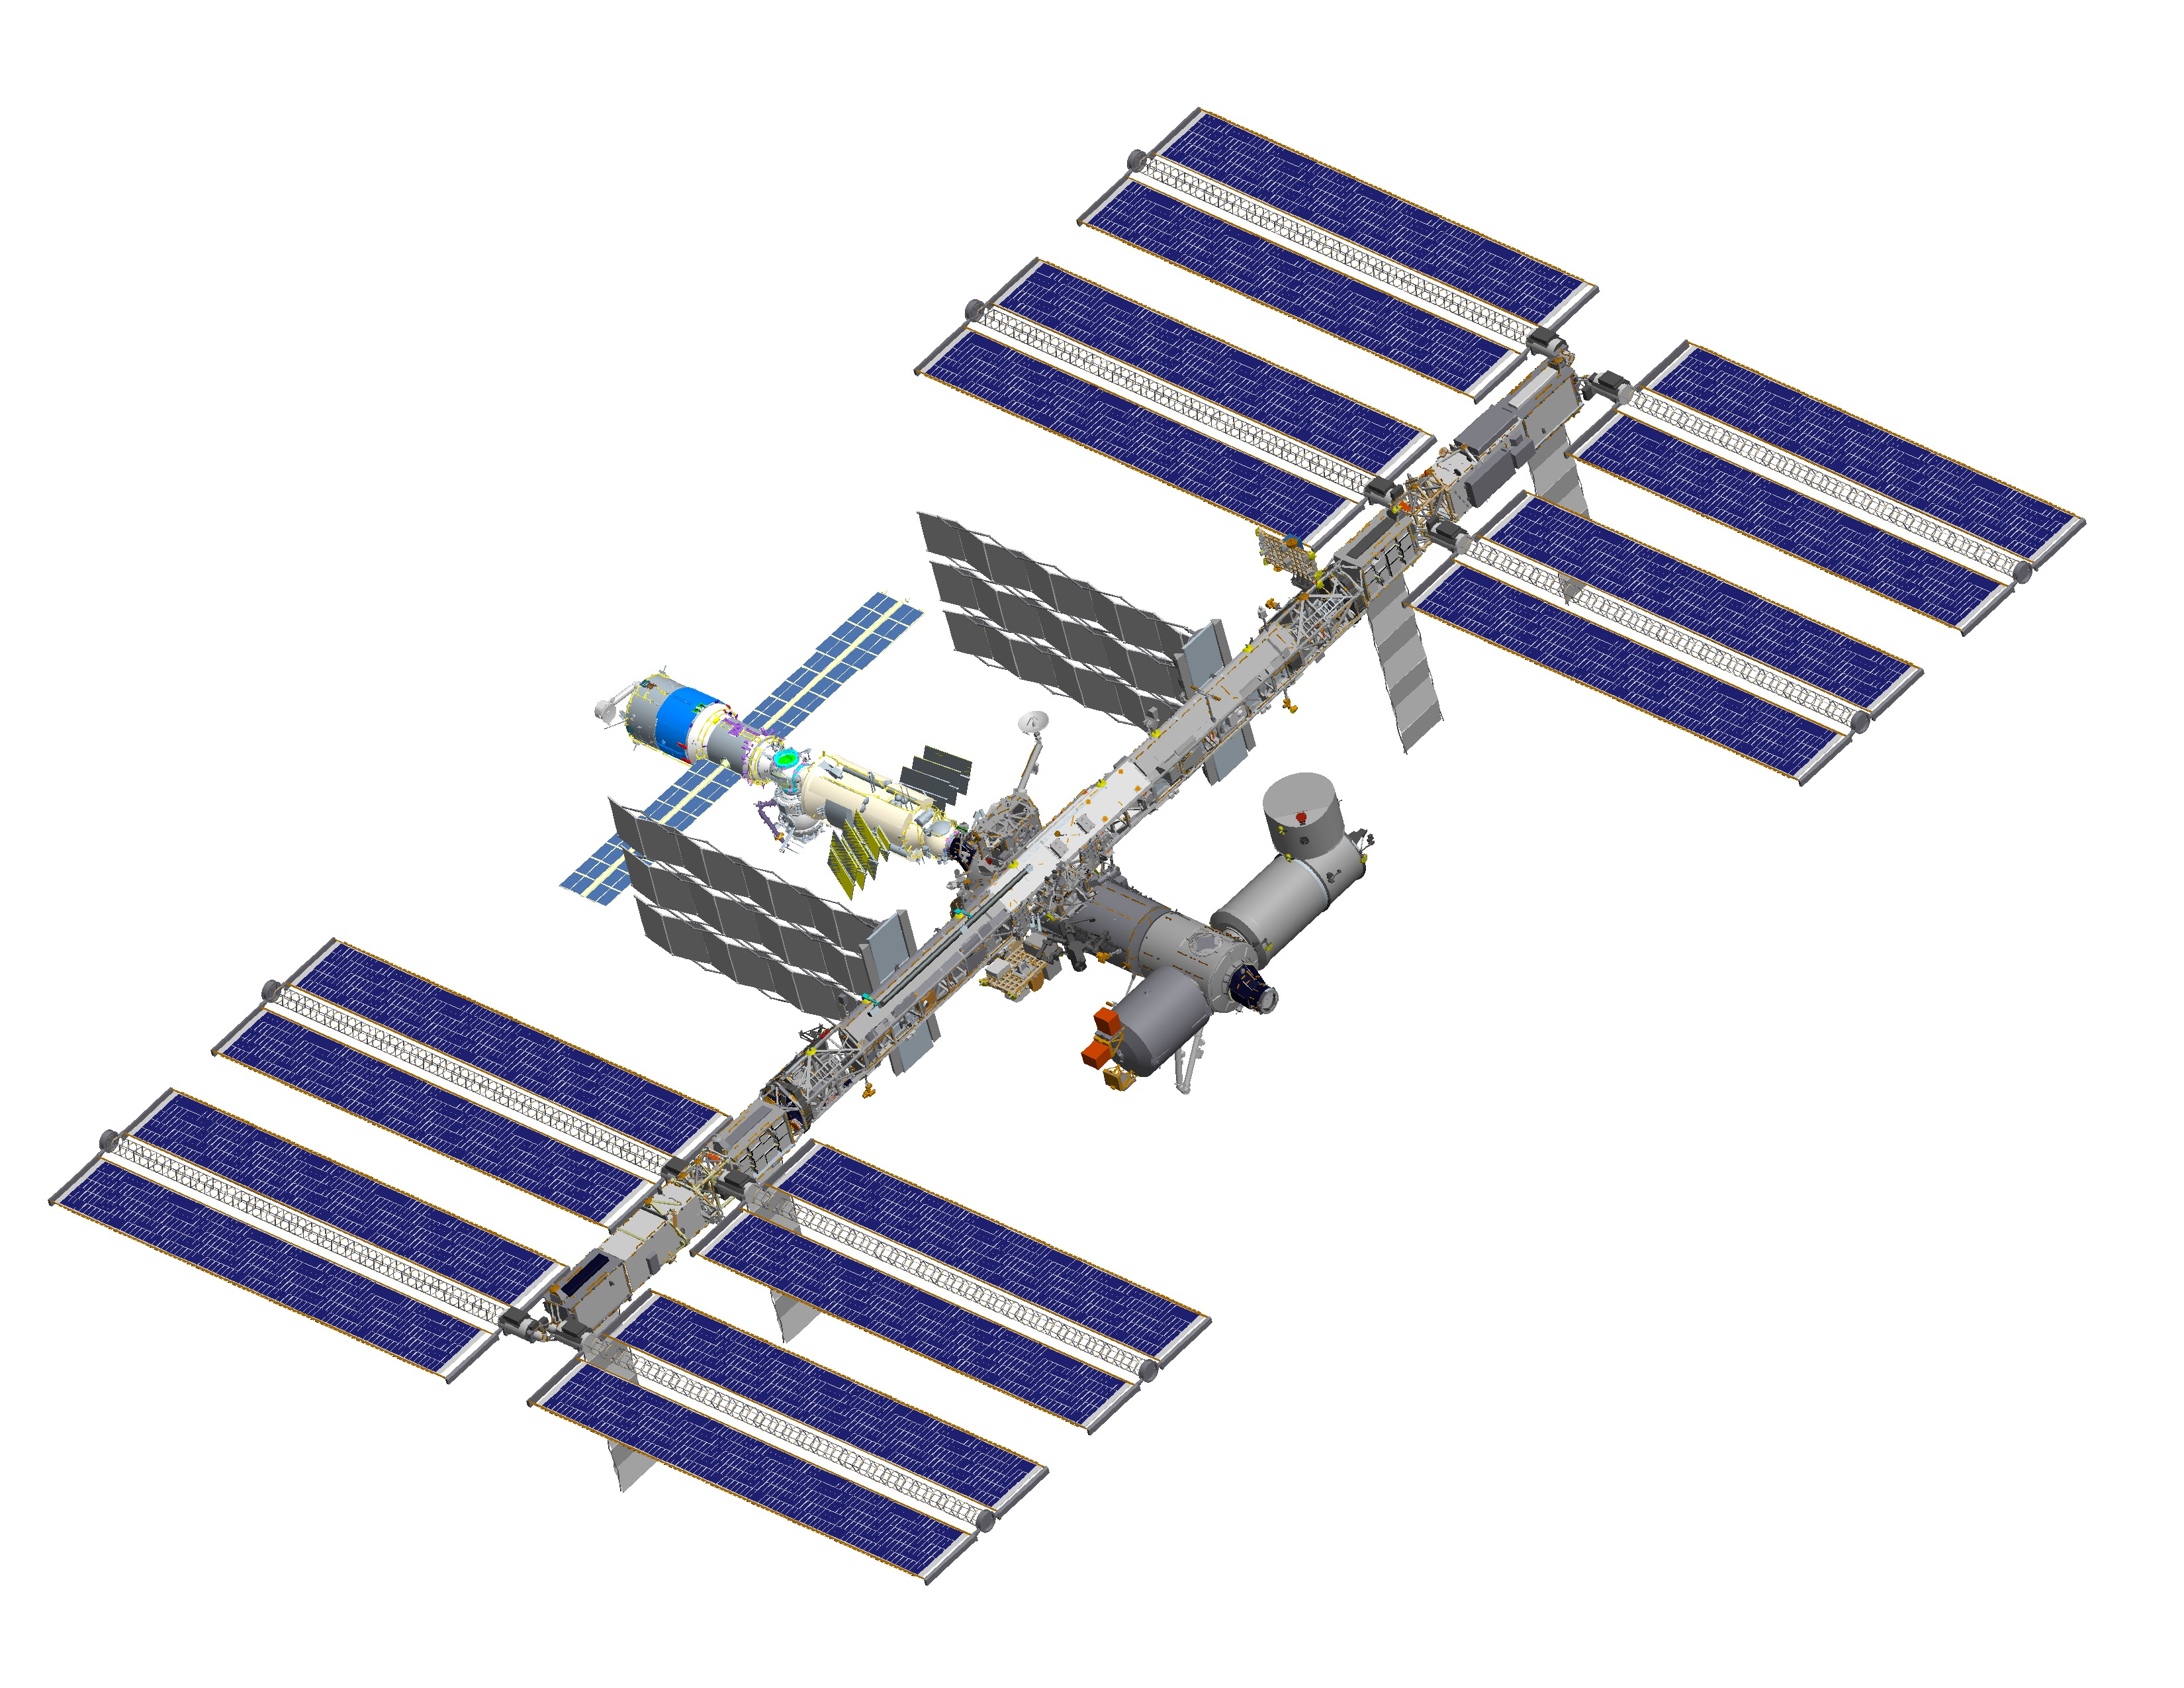 international space station diagram - photo #18